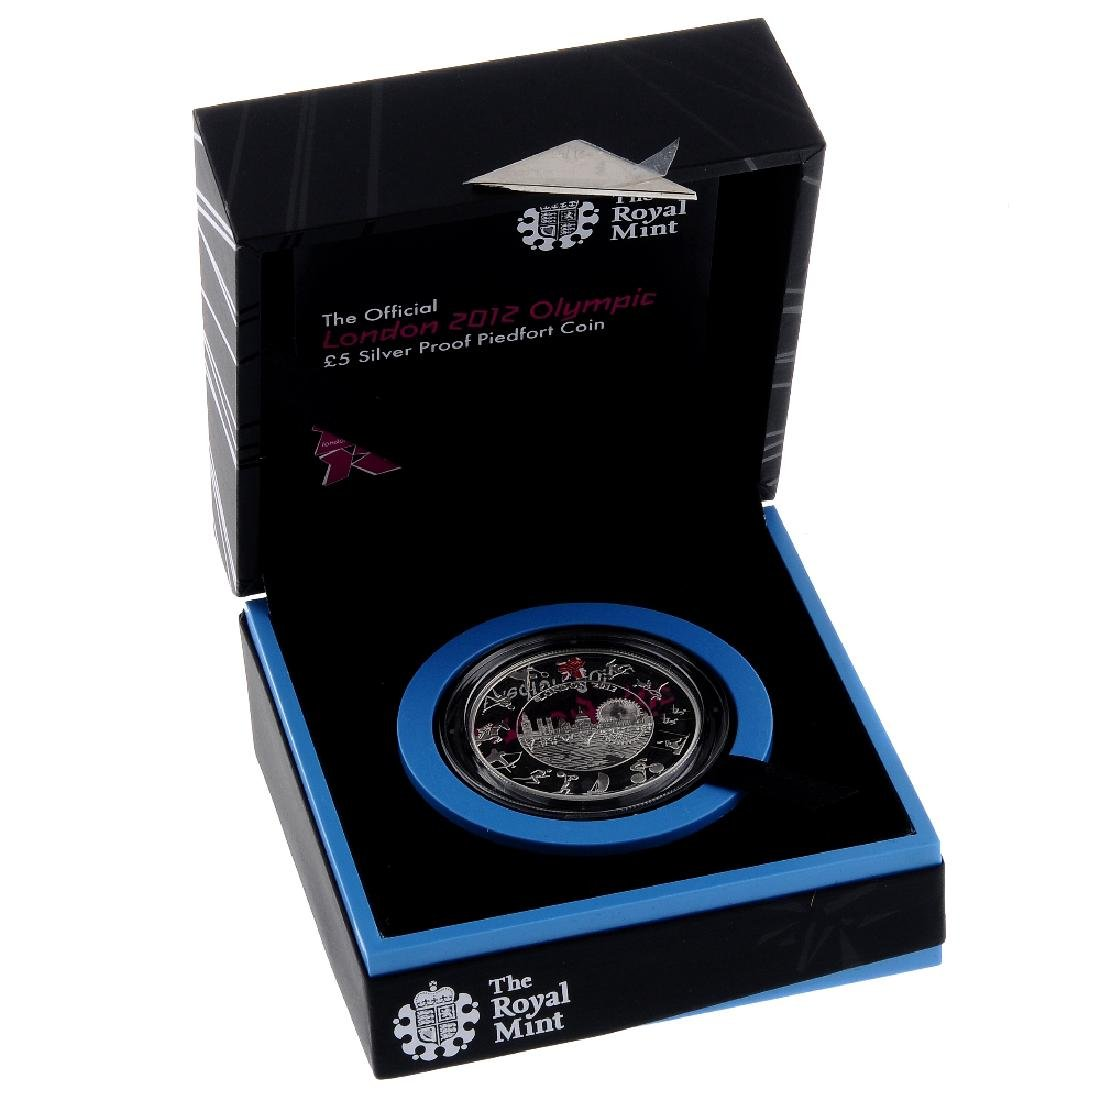 Elizabeth II, Royal Mint Official London 2012 Olympic